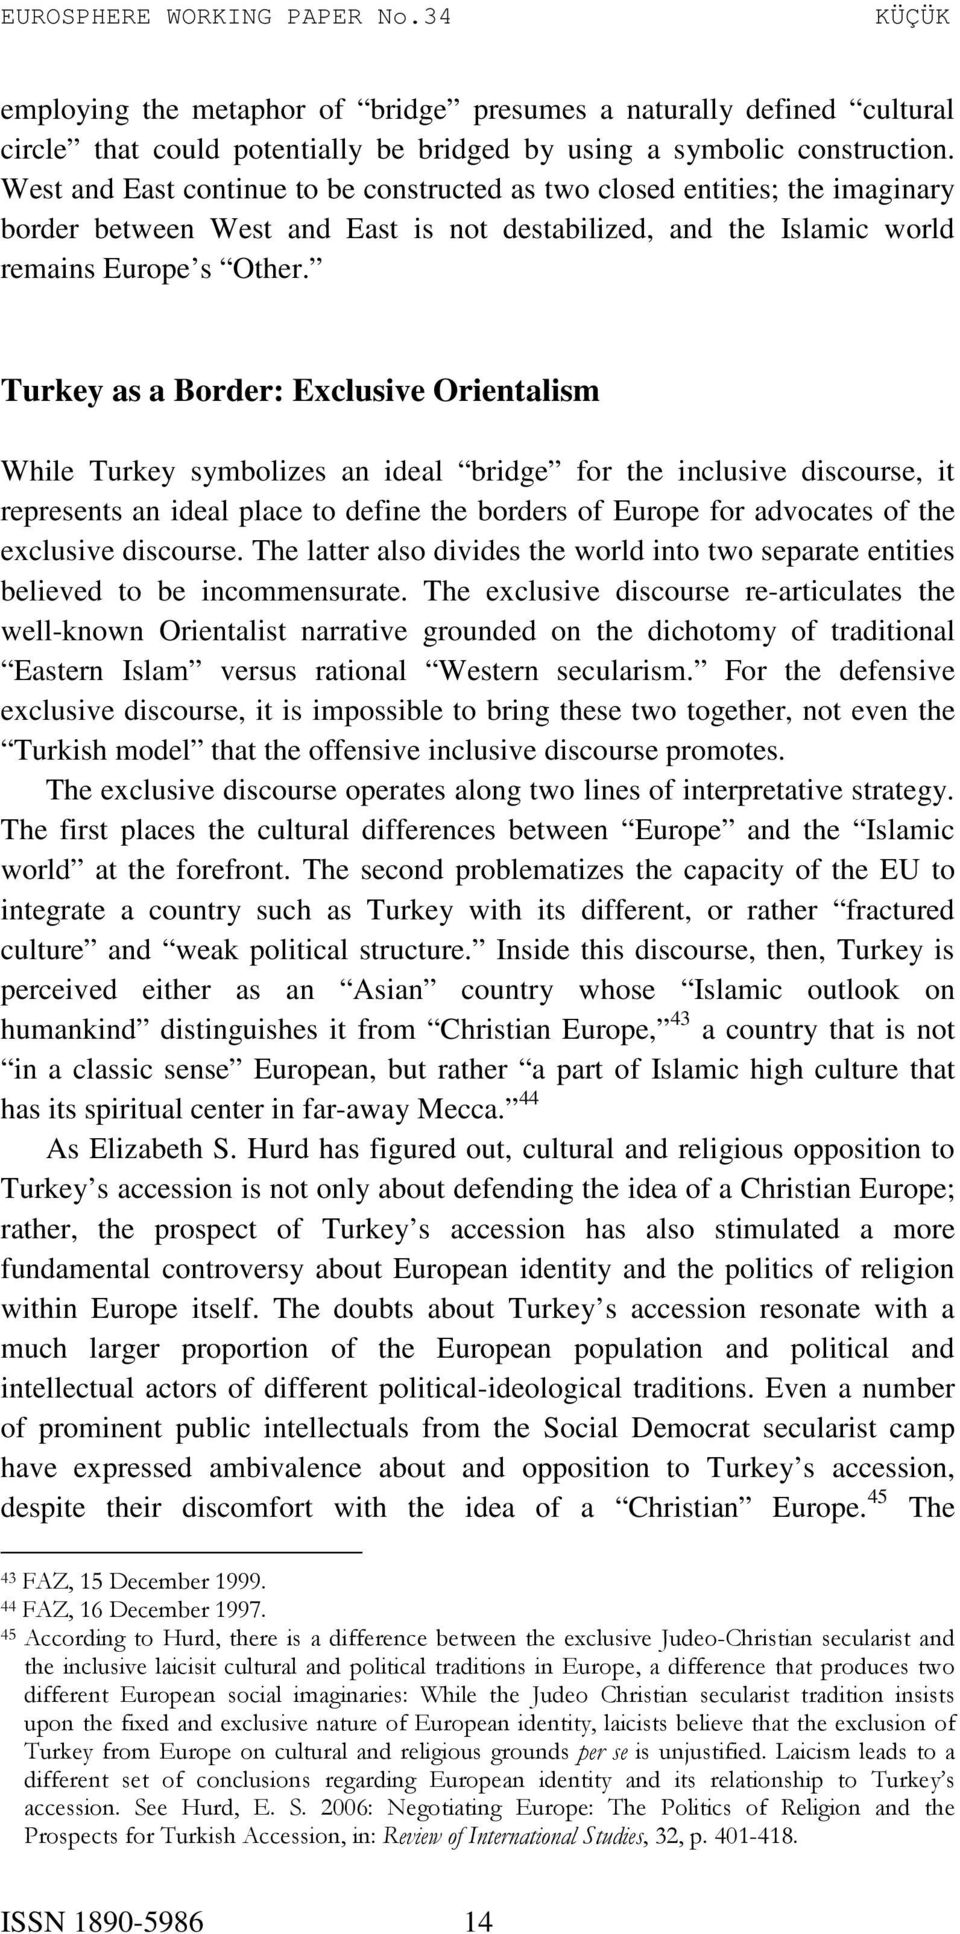 Turkey as a Border: Exclusive Orientalism While Turkey symbolizes an ideal bridge for the inclusive discourse, it represents an ideal place to define the borders of Europe for advocates of the